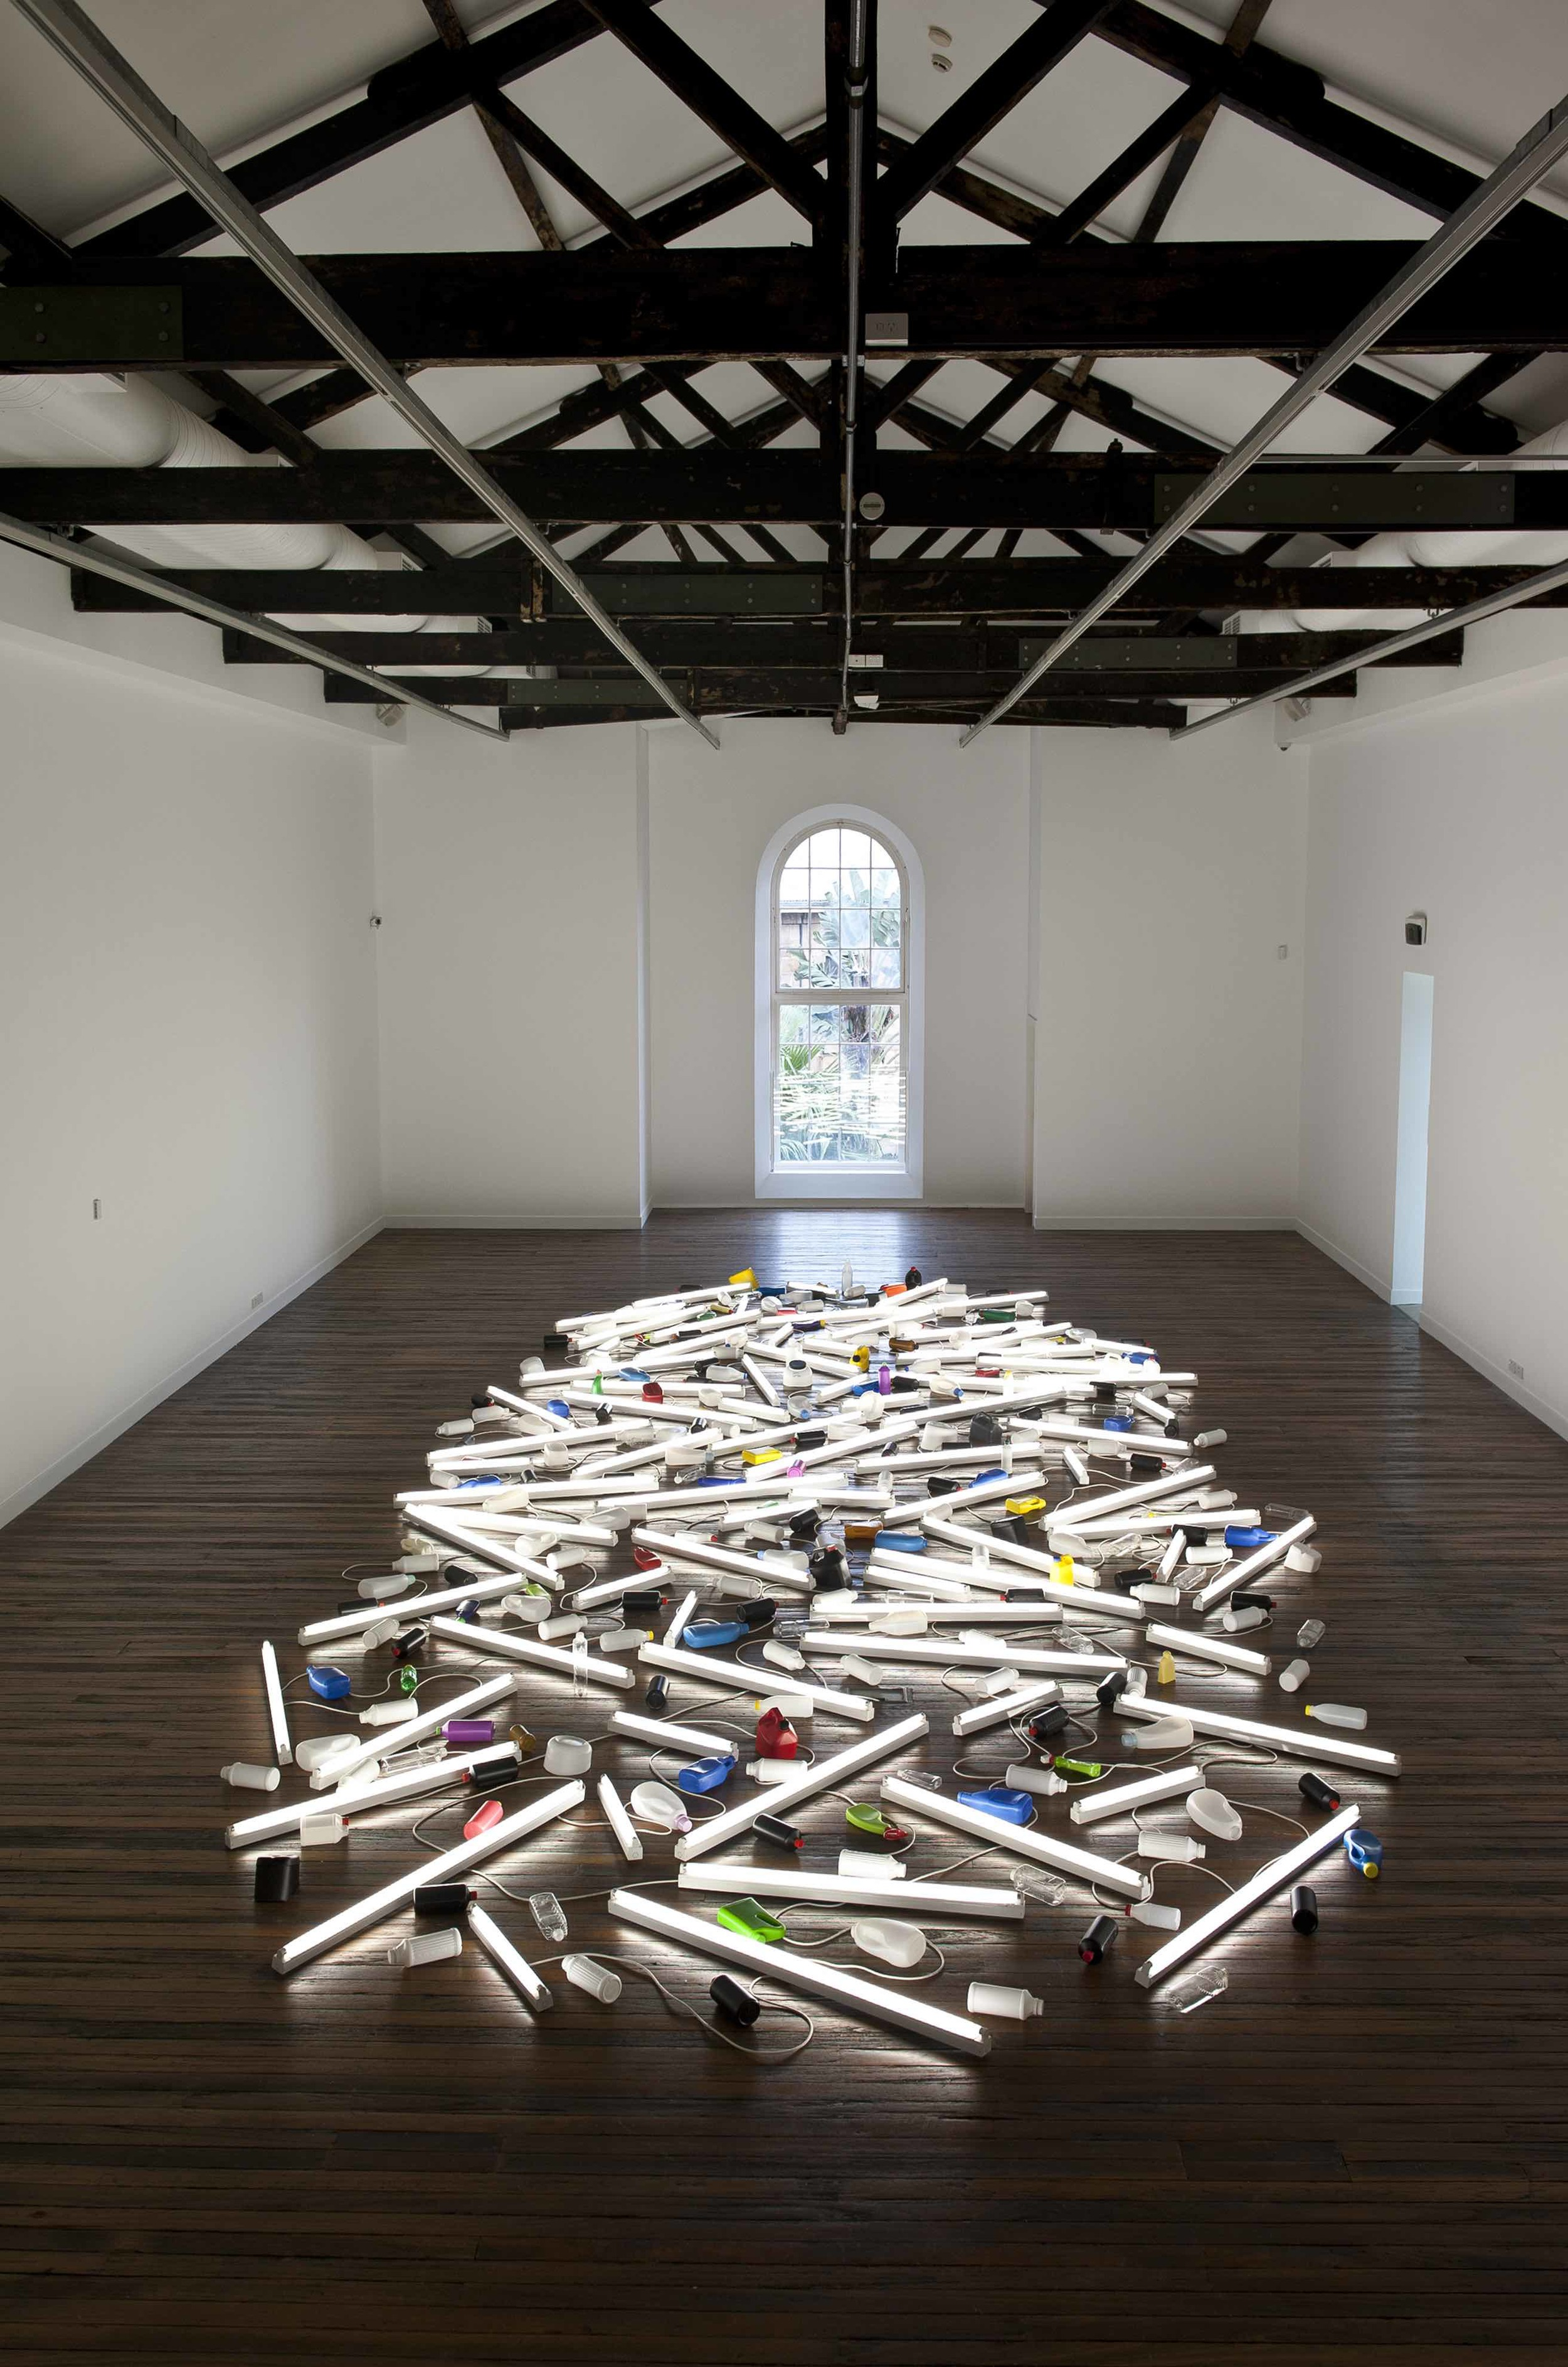 Bill Culbert in January this year at NAS Gallery. Image caption is Bill Culbert  Pacific Flotsam  (2007) installation view, NAS Gallery January 2015 Photo: Peter Morgan.